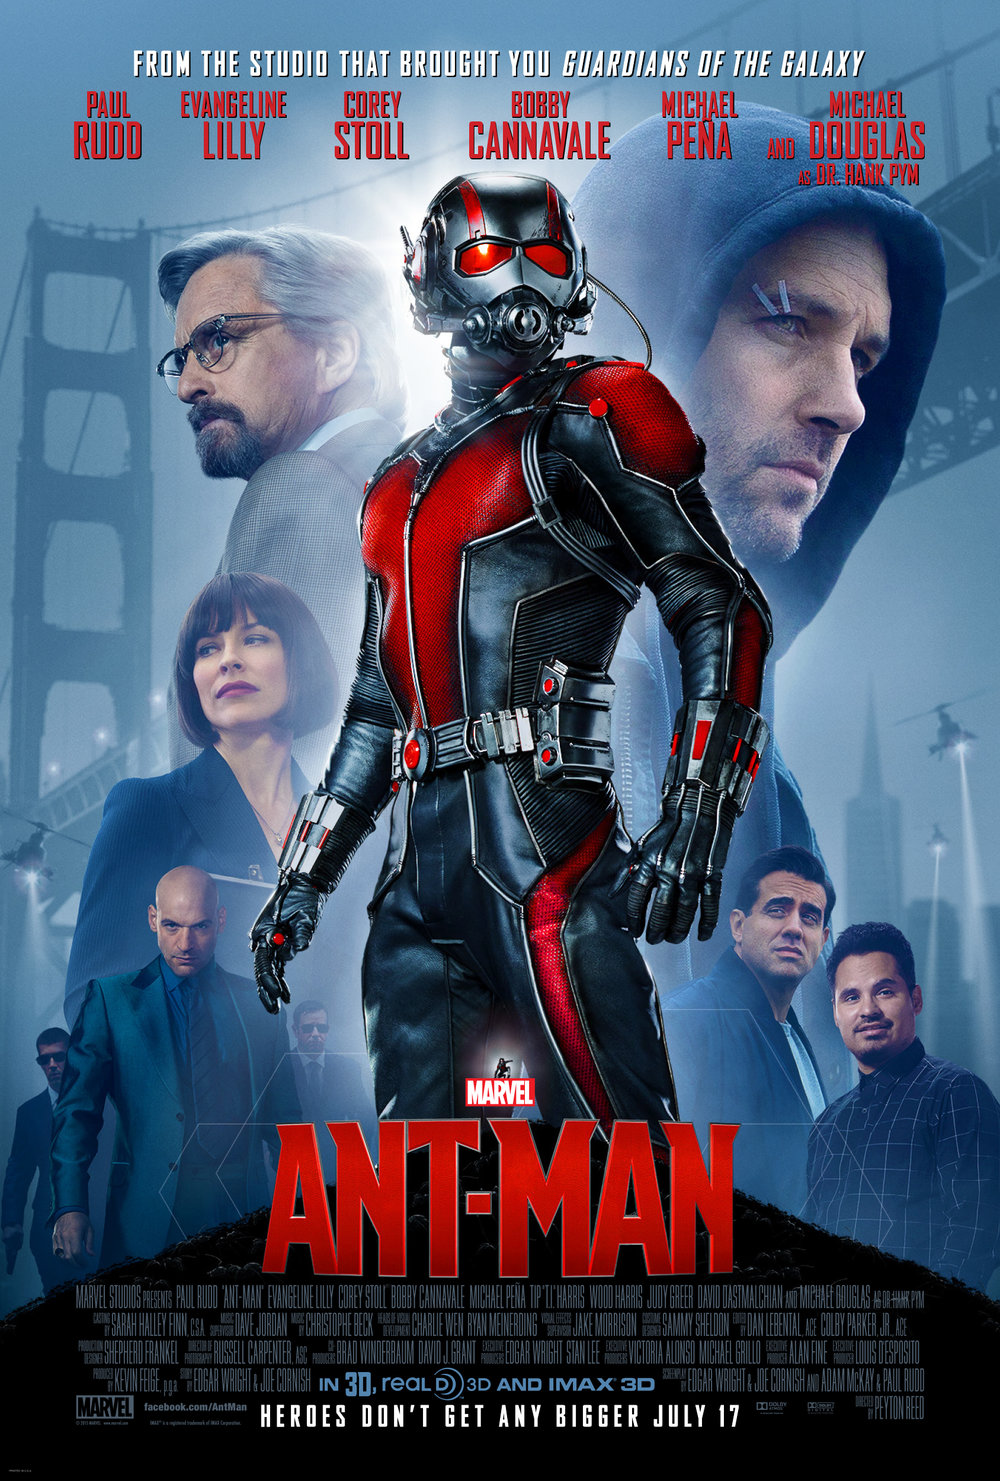 Ant-Man (2015) - Directed by: Peyton ReedStarring: Paul Rudd, Michael Douglas, Corey Stoll, Evangeline LillyRated: PG-13Running Time: 1h 57mTMM Score: 2 stars out of 5STRENGTHS: Some Humorous MomentsWEAKNESSES: Uninteresting, Not Heisty Enough